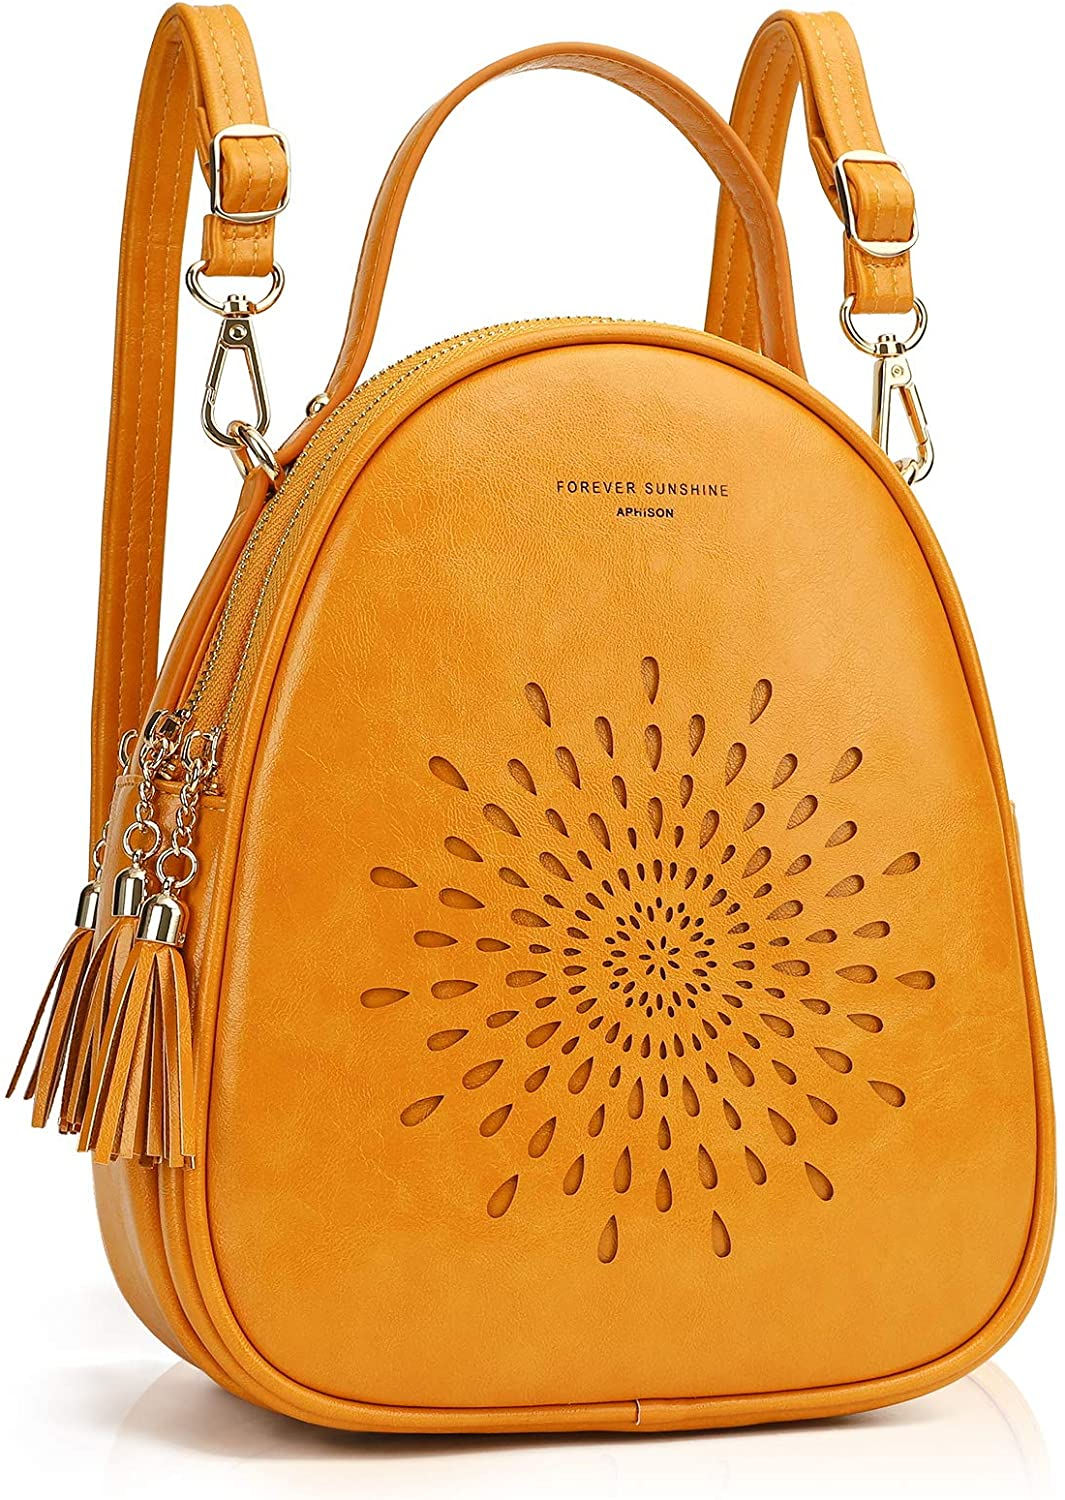 APHISON Fashion Mini Backpack Purse for Women Teen Girls Cute Small Backpacks PU Leather Crossbody Shoulder Bags Handbags Multifunctional and Large-Capacity Daypack Purse 1953-YELLOW